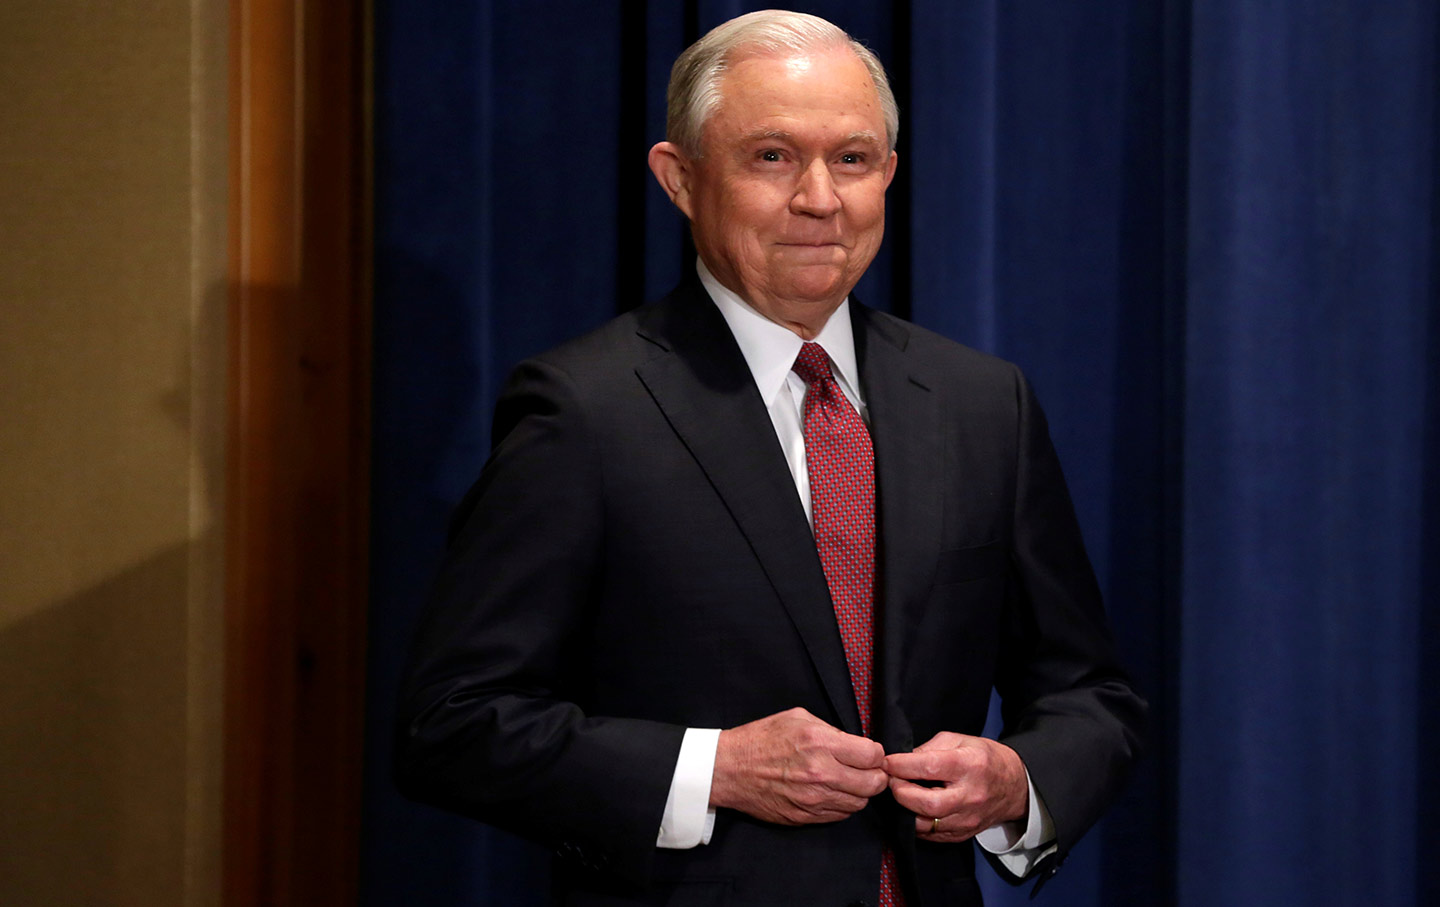 Sessions arrives at the news conference